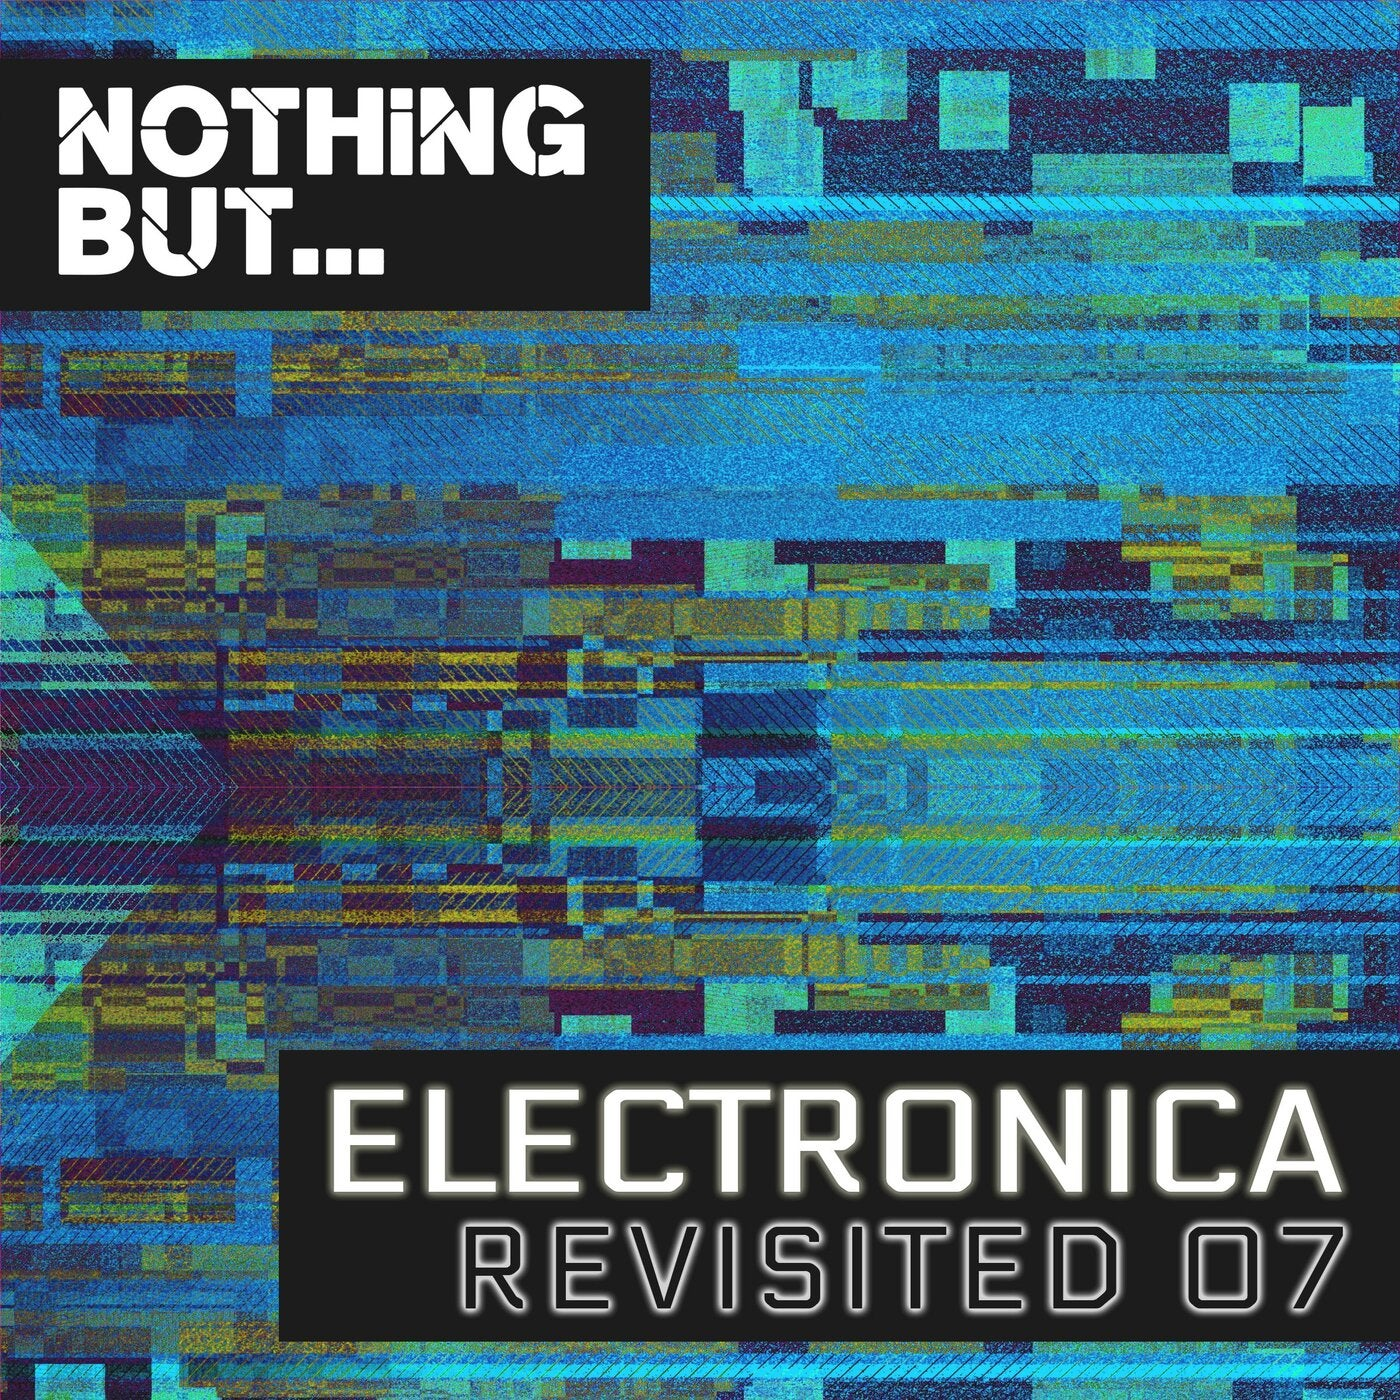 Various Performers - Nothing But... Electronica Revisited Vol. 07 (2021)